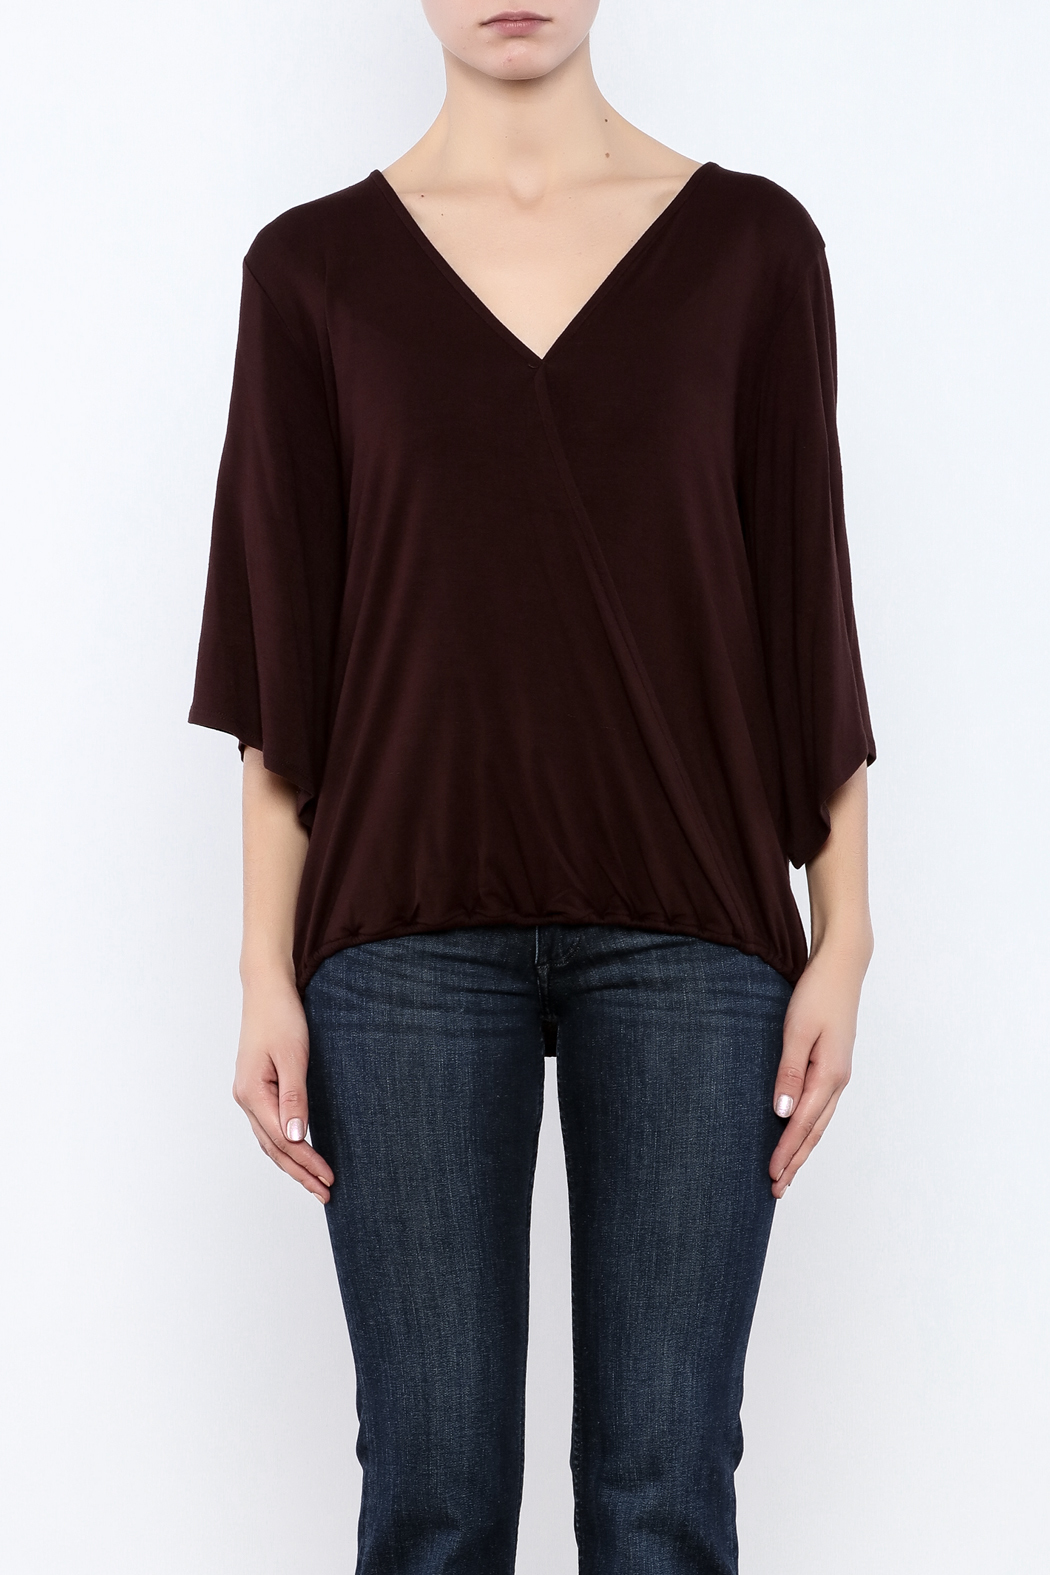 Veronica M Versatile Surplus Top - Side Cropped Image